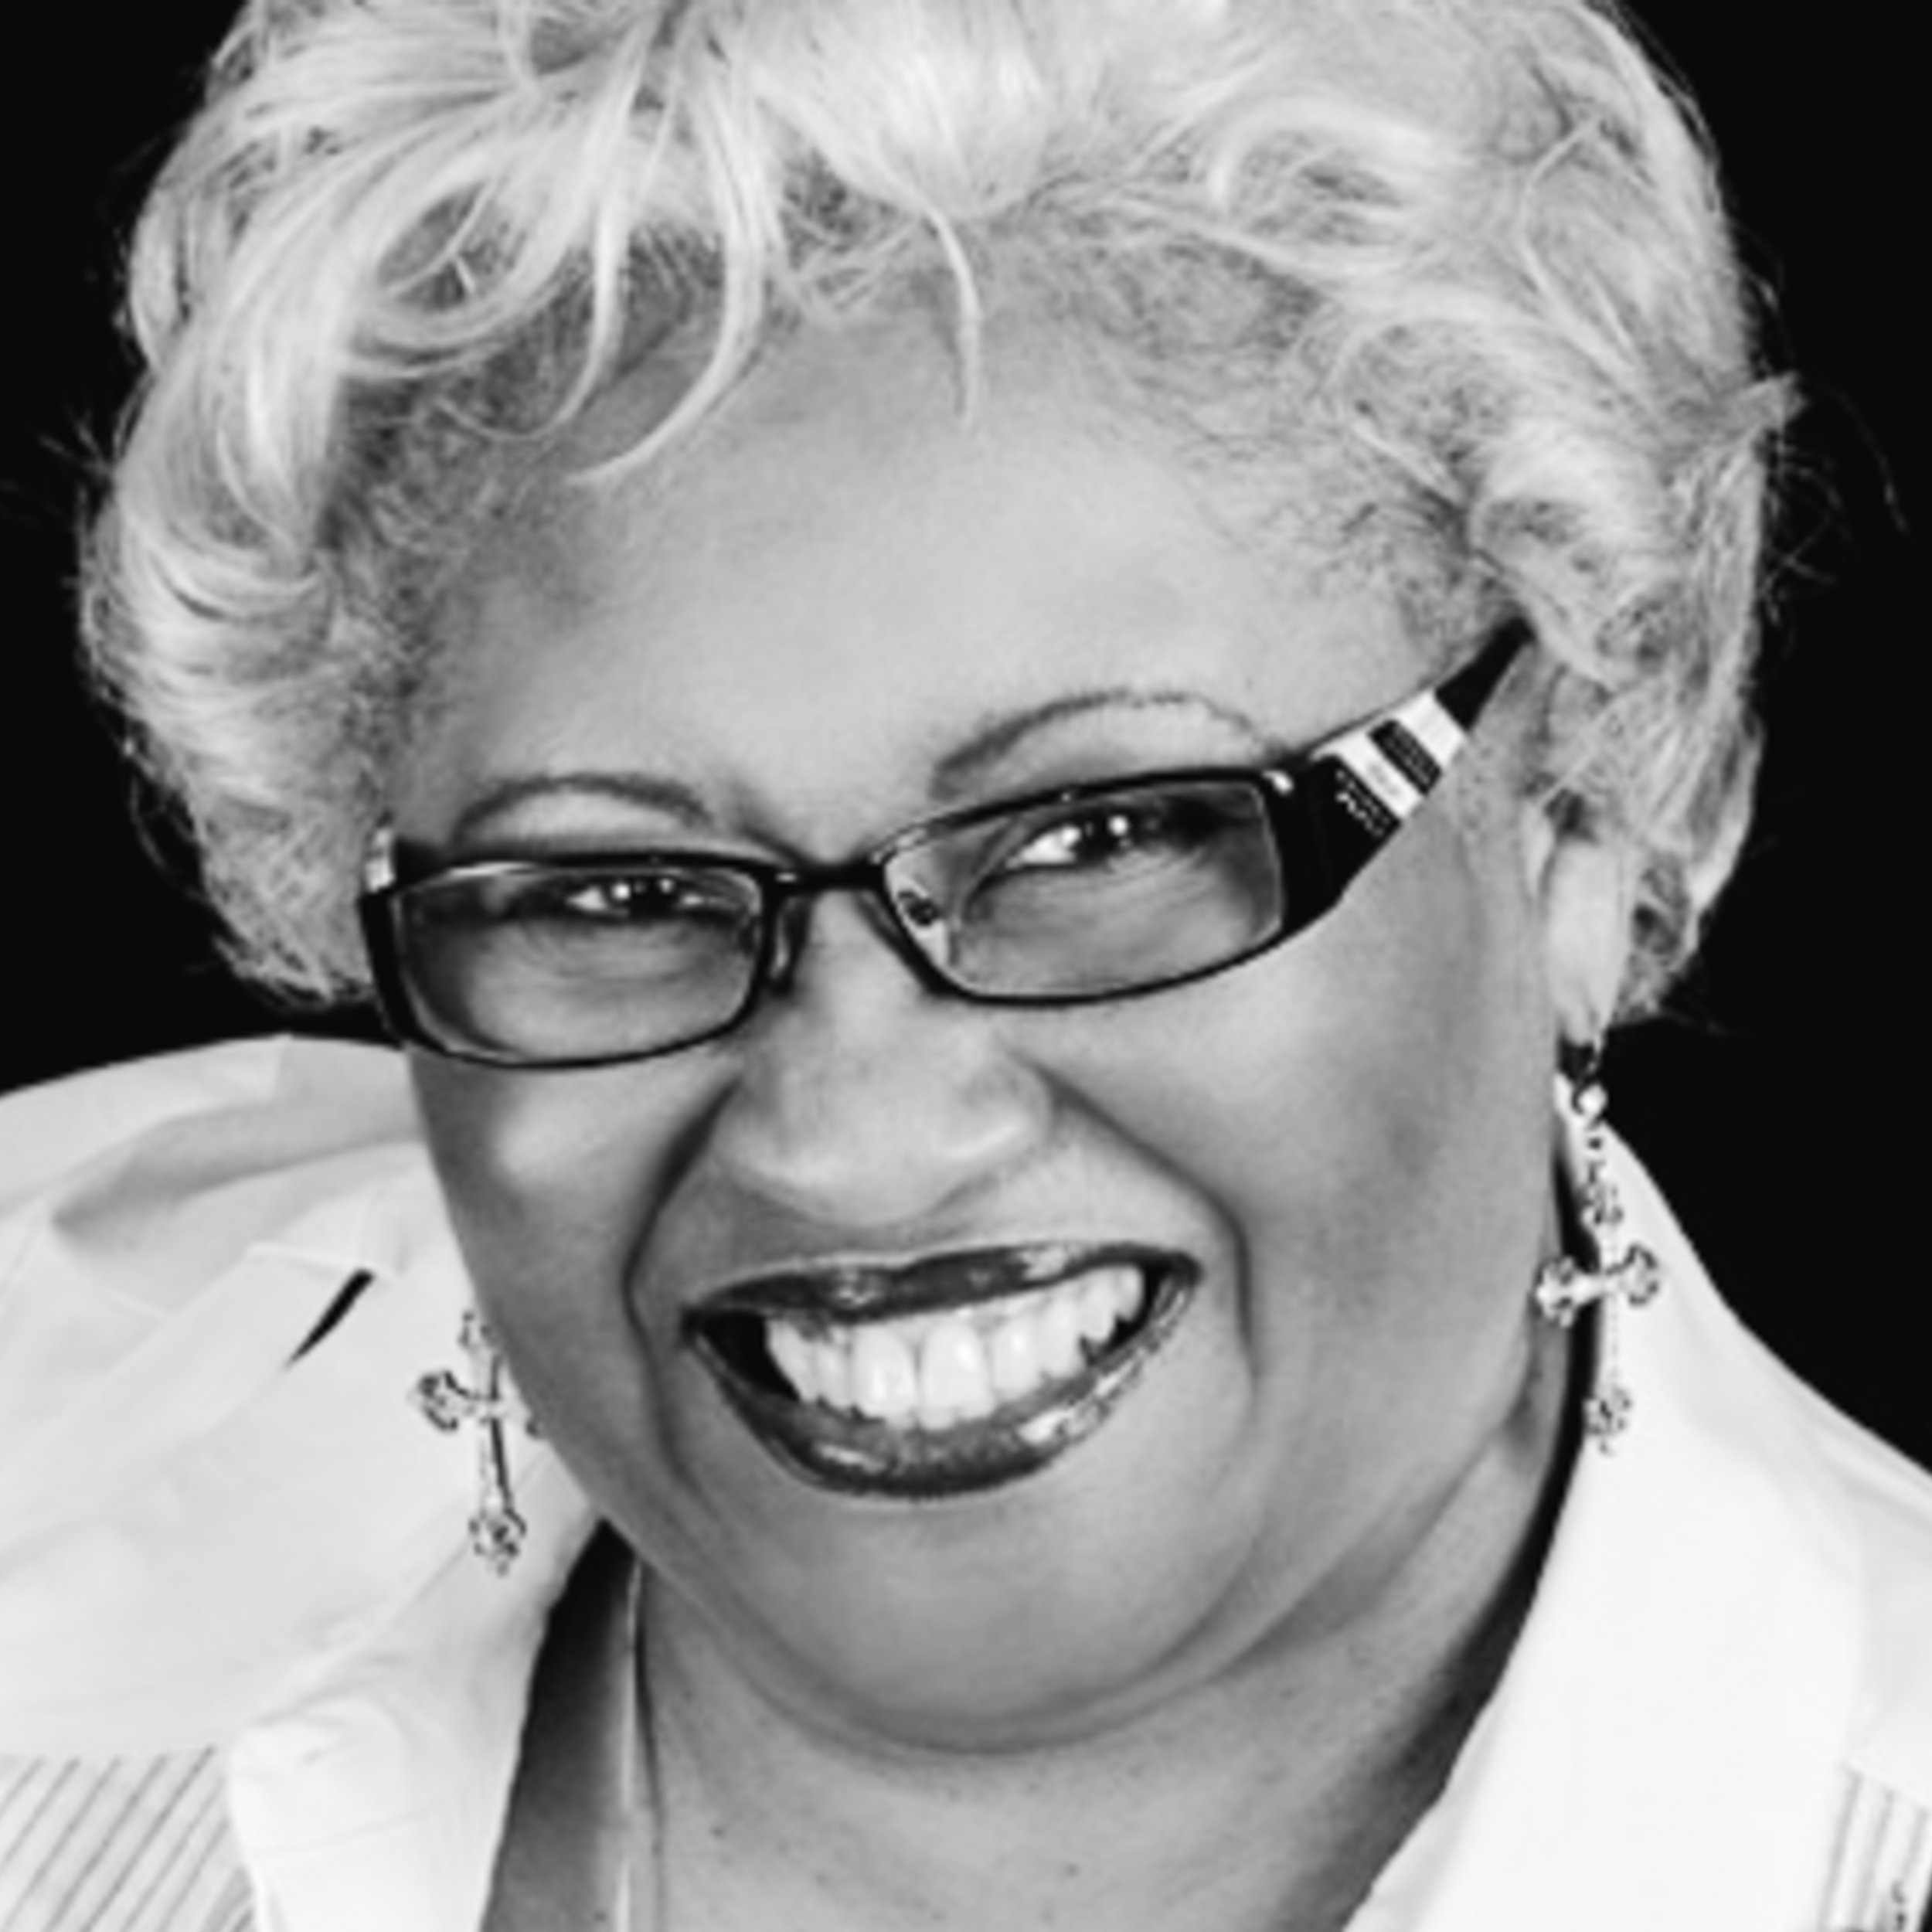 """Thelma Wells (Mama T) - Speaker, Author, Professor & Mentor A Woman of God Ministries – Dallas, TX""""When I want a beautiful book about the home, I always look for one that is authored by Devi Titus. This book is what I need to satisfy my desire to make my home a fortress of love and peace for my growing family. Go slowly through the pages and see if you don't feel eloquent, relaxed and caressed while selecting your families' surroundings for a powerful legacy of beauty and love in your house!"""""""